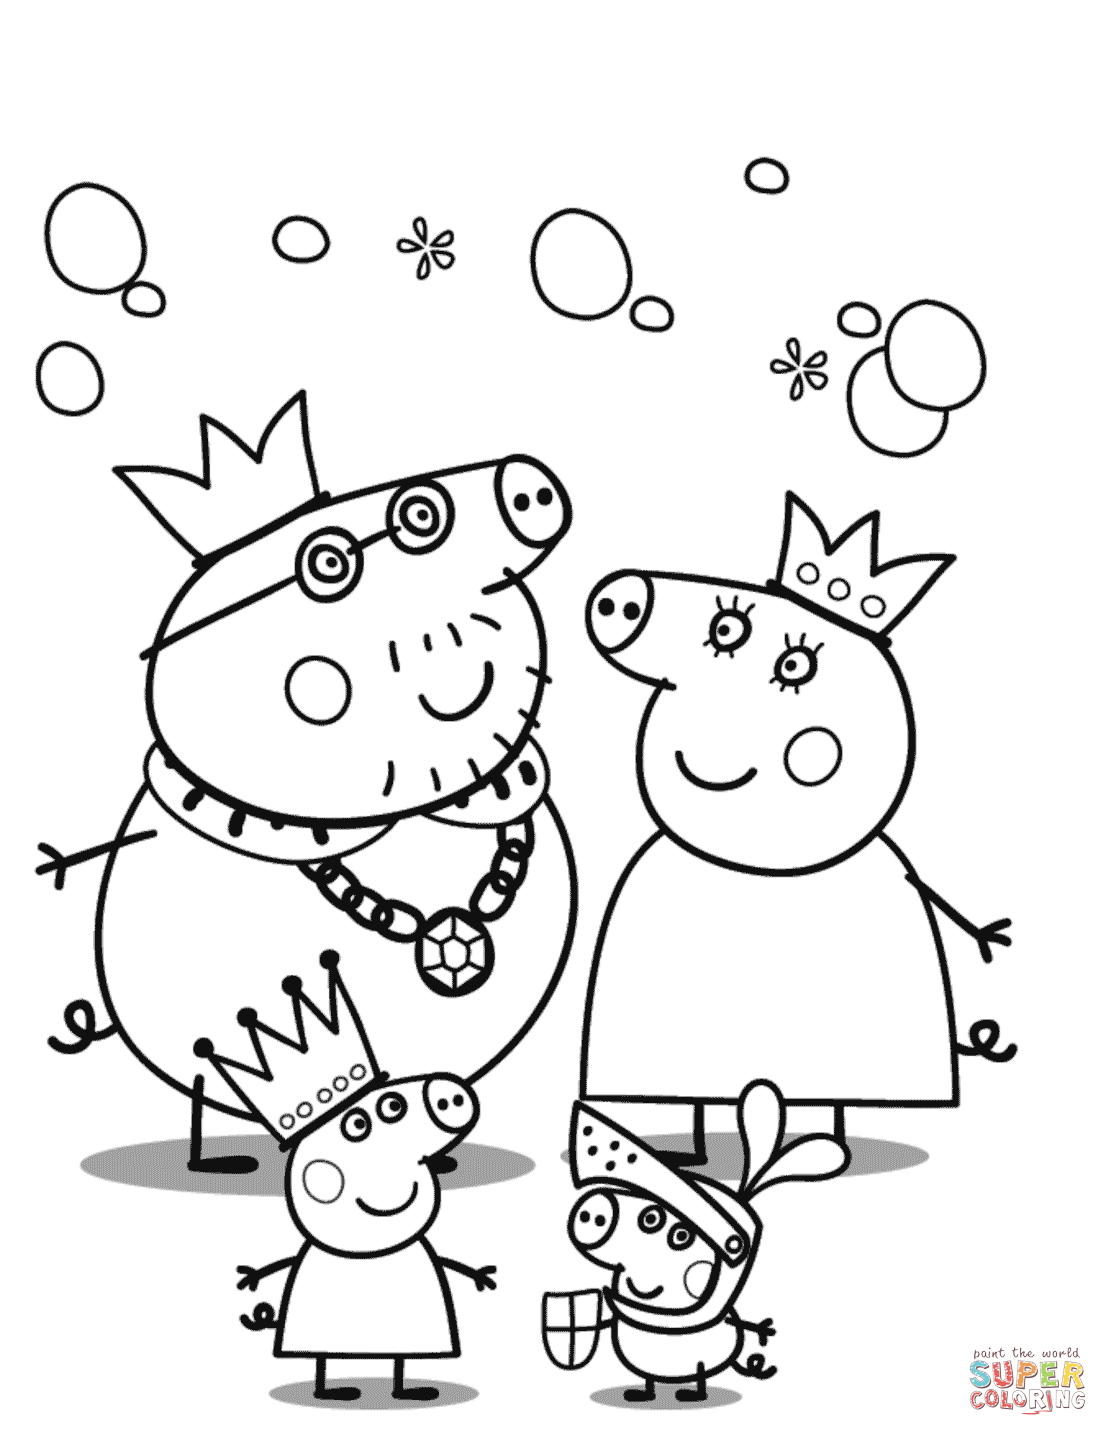 Peppa Pig S Royal Family Coloring Page